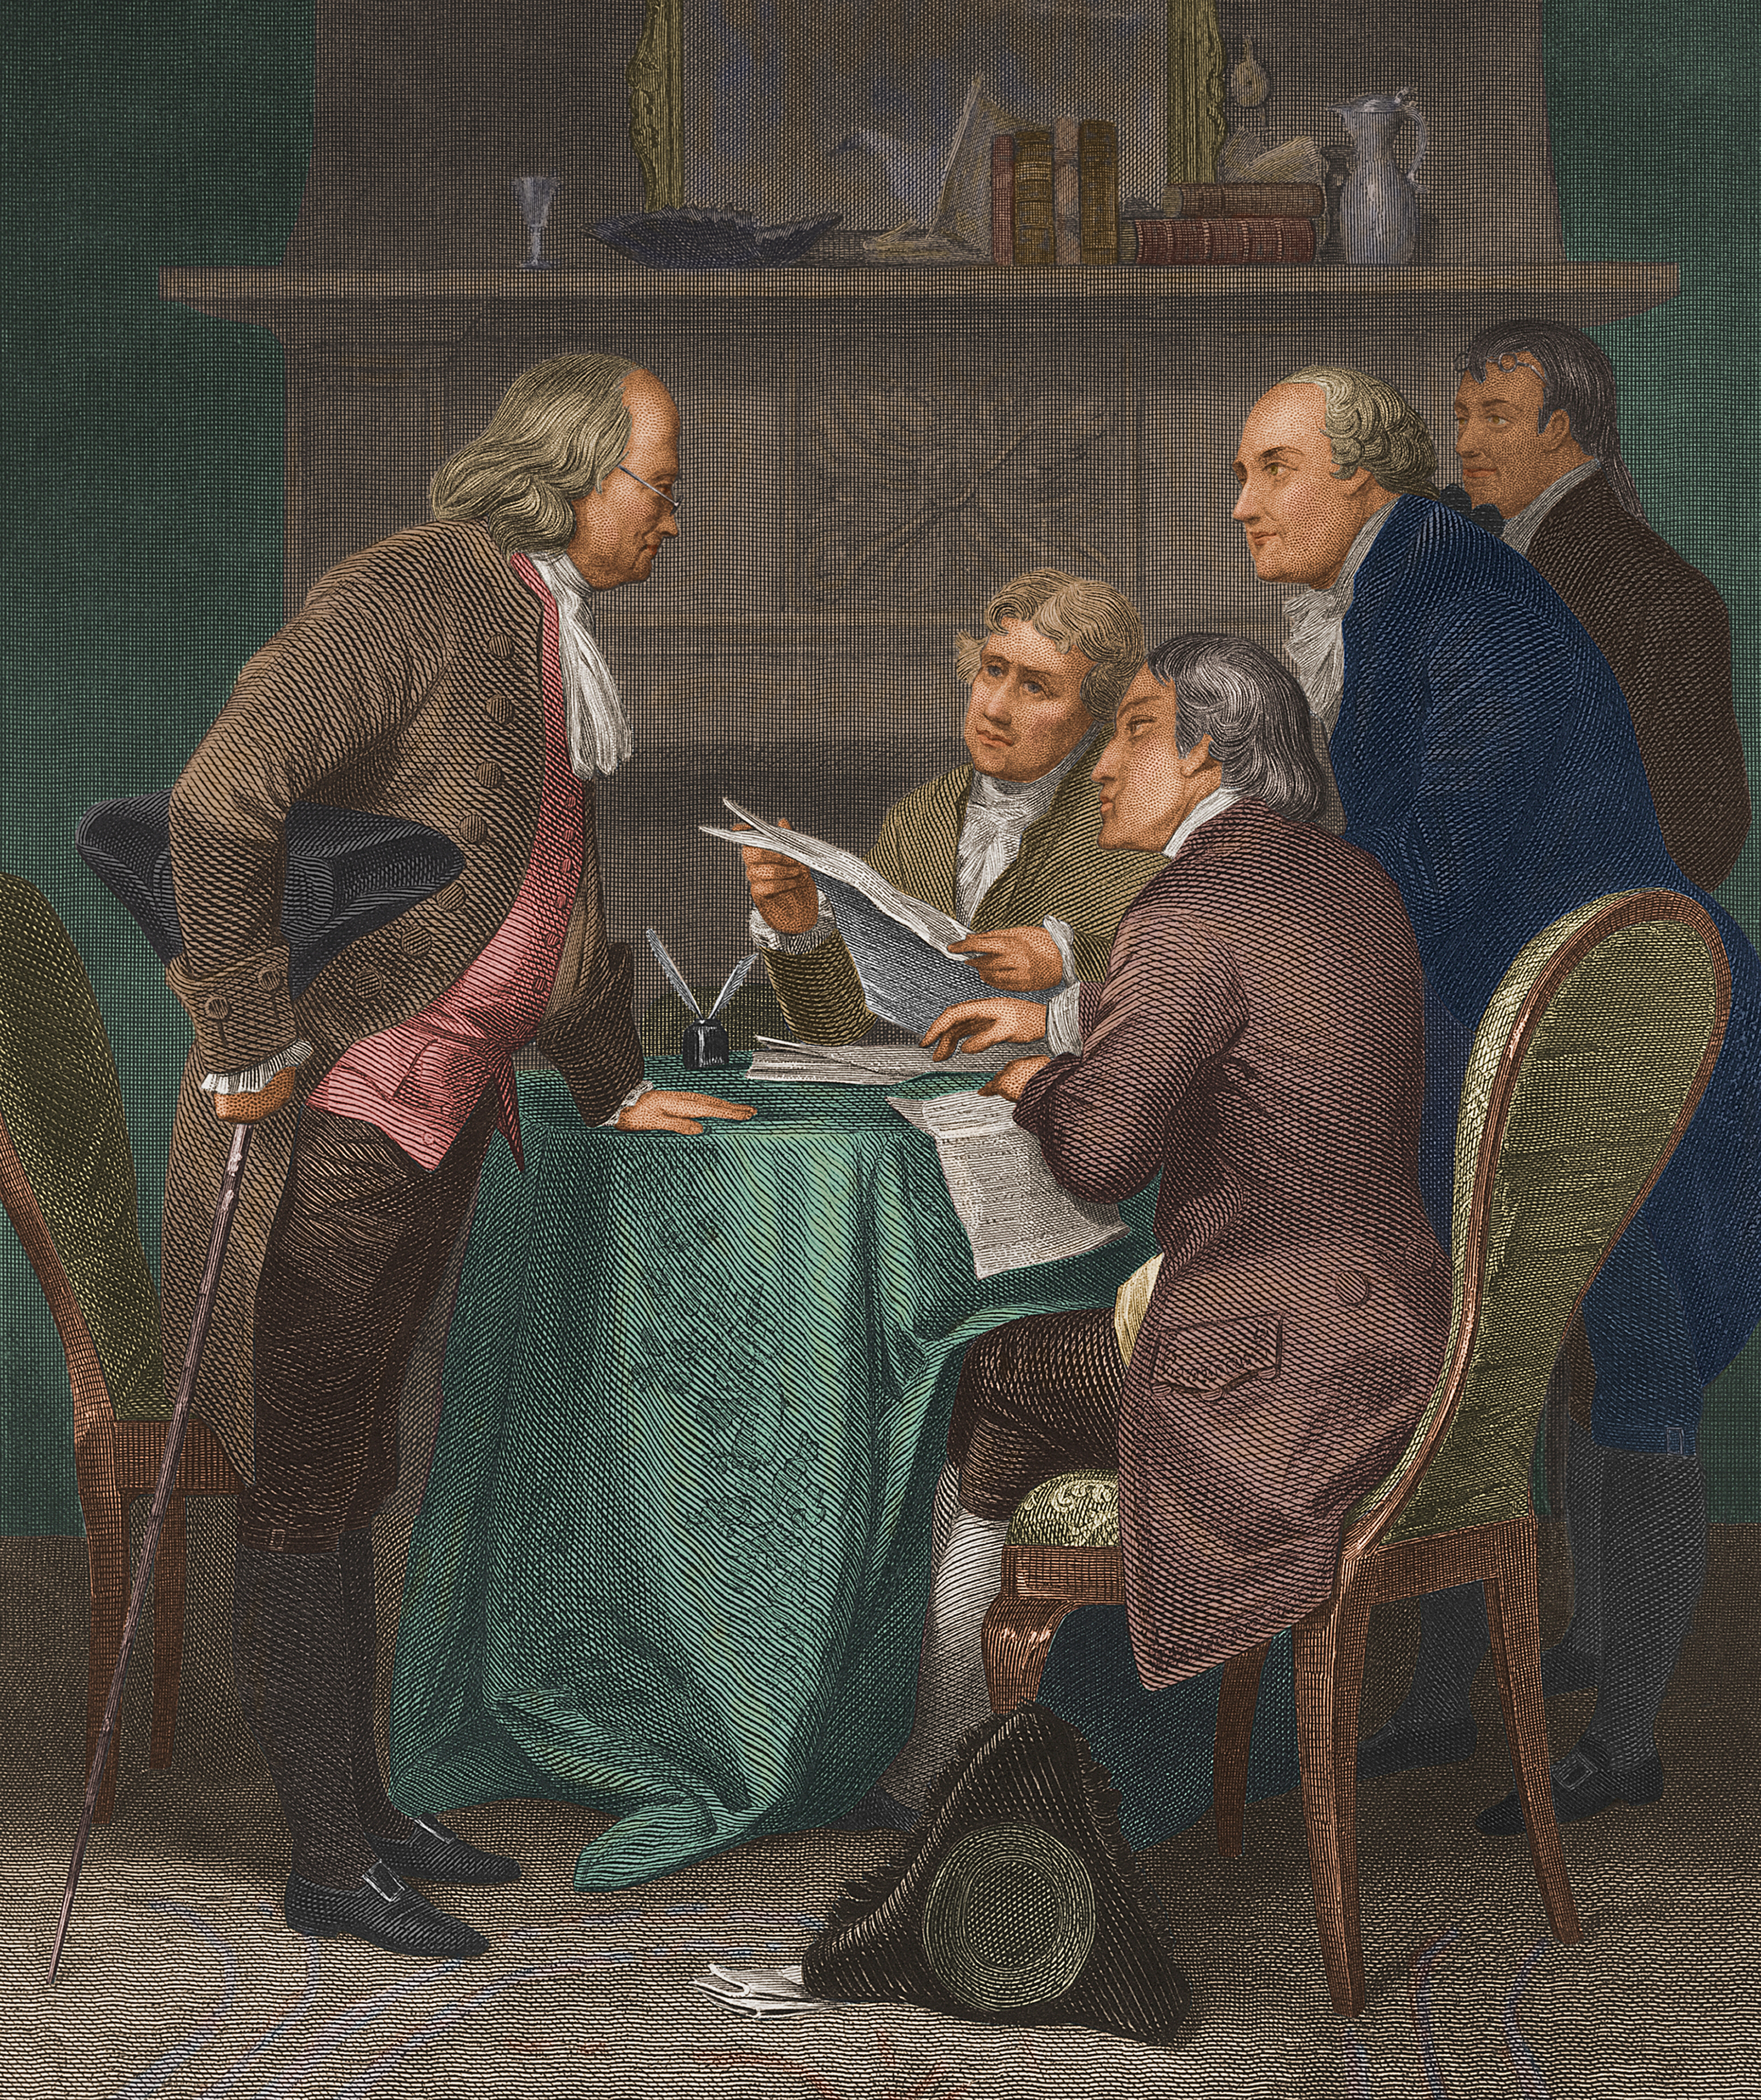 They had printing presses in 1776. So why was the Declaration of Independence handwritten?